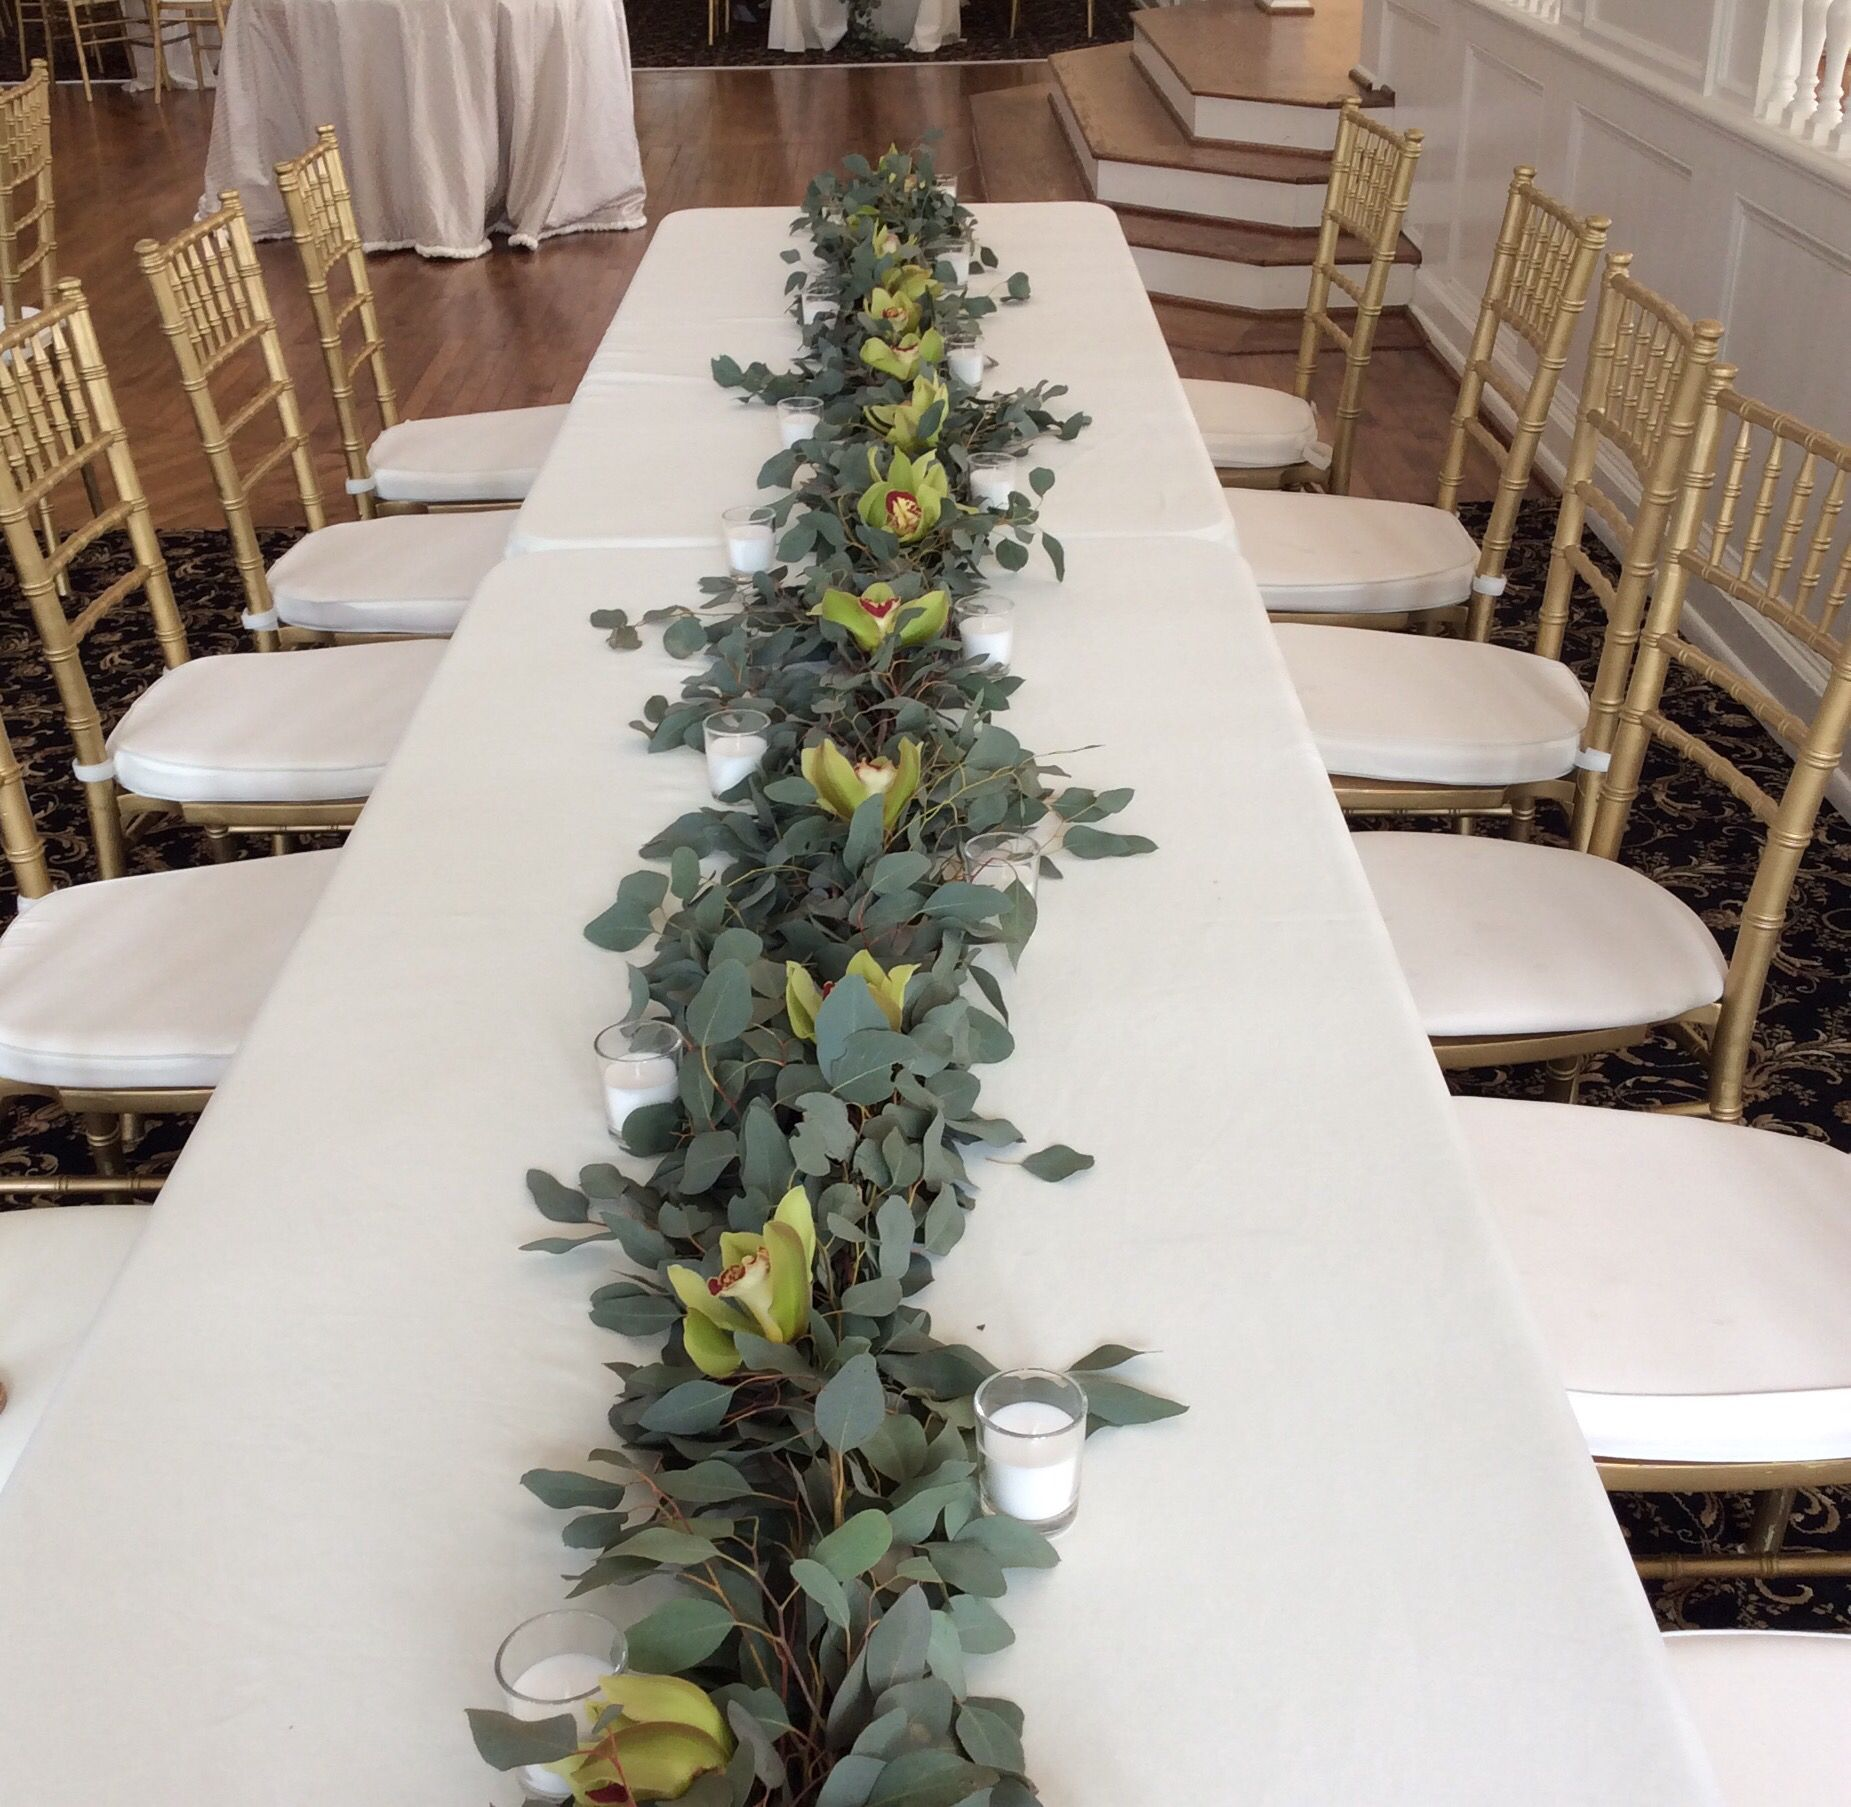 Family table with a eucalyptus garland and green cymbidium orchids